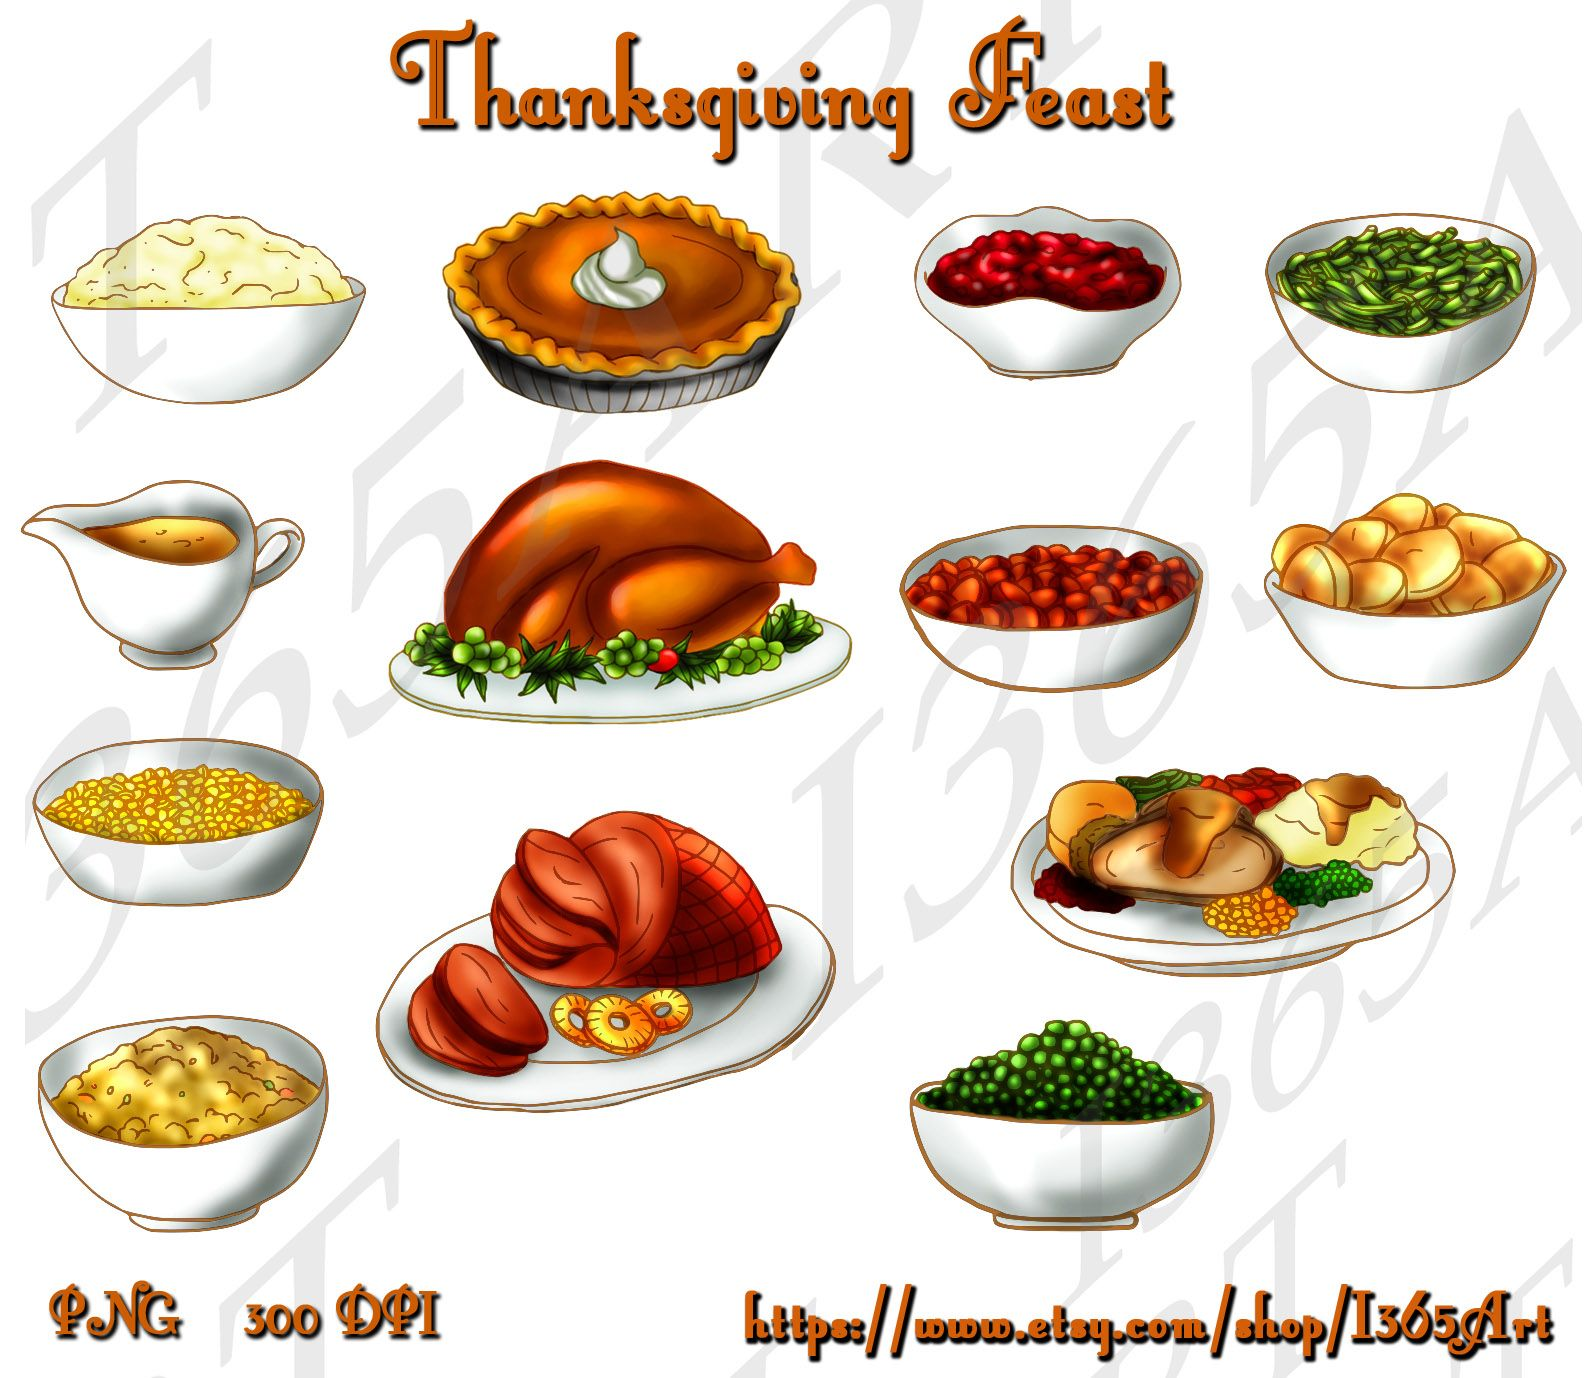 thanksgiving turkey dinner clip art free thanksgiving food clipart clipart suggest [ 1584 x 1378 Pixel ]